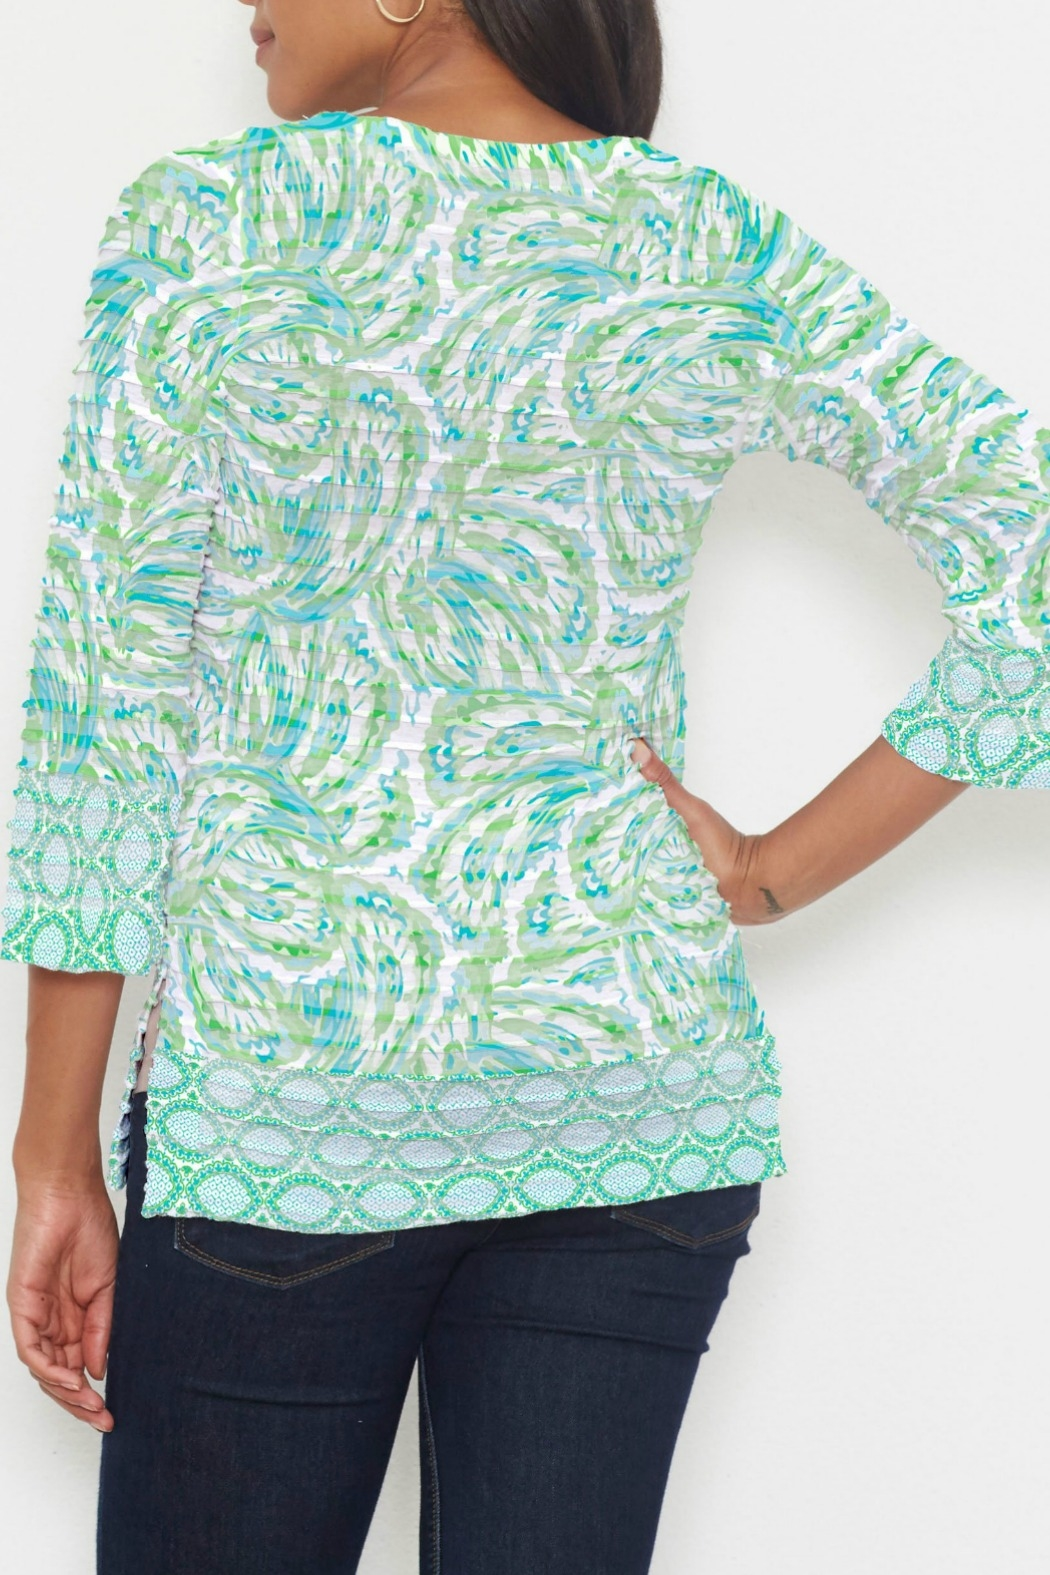 Whimsy Rose Coastal Paisley Lace Green 3/4 T - Front Full Image